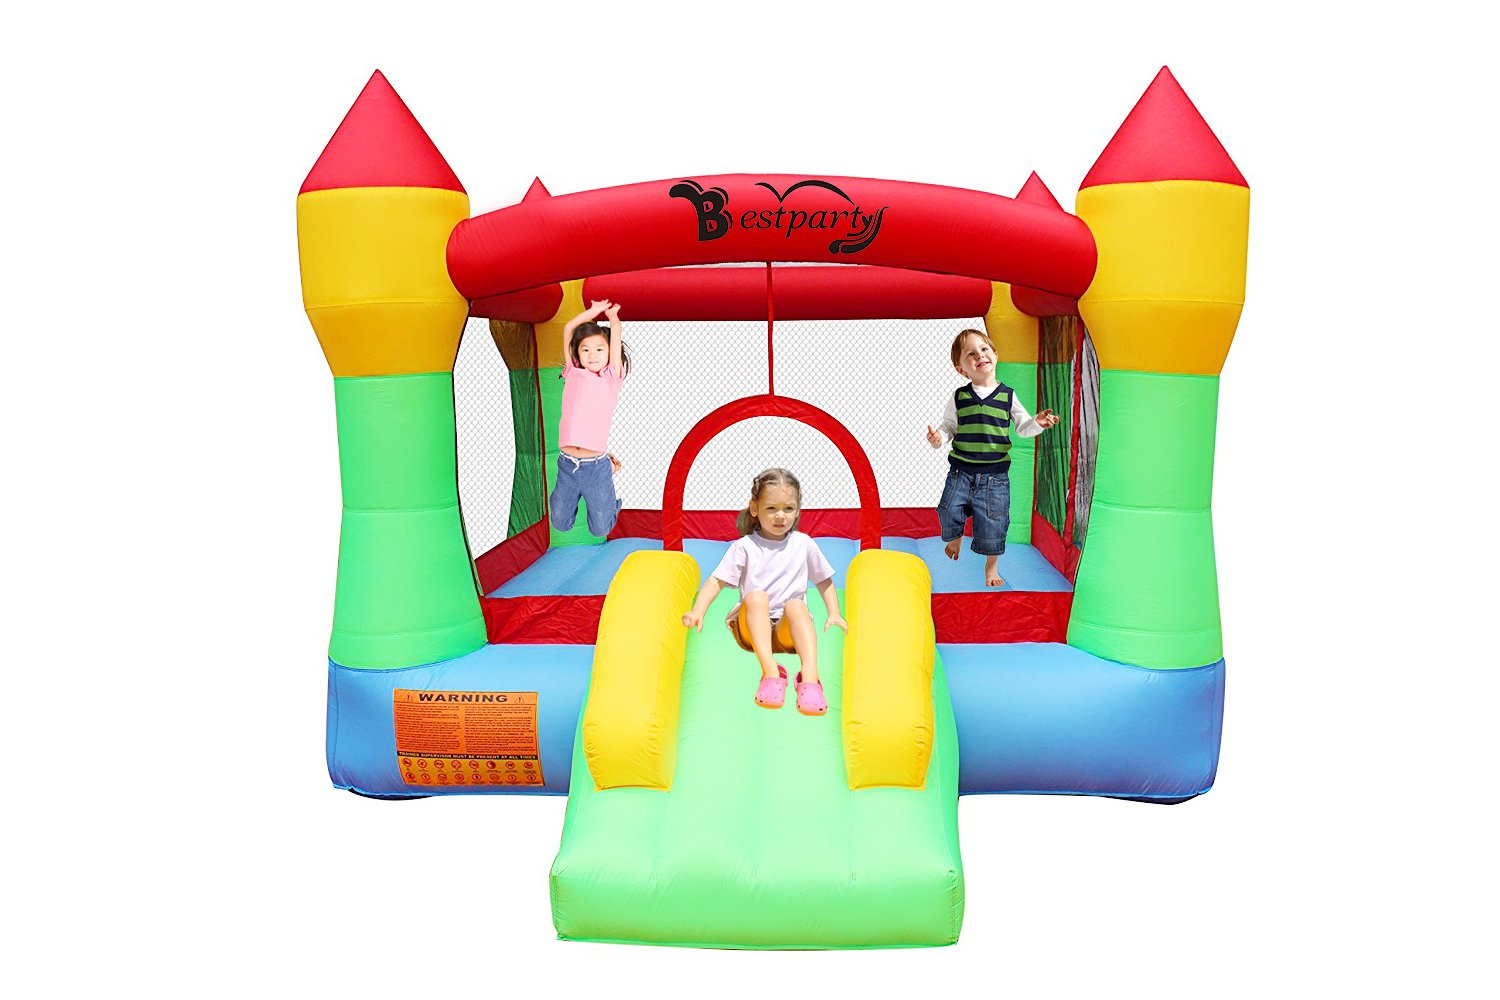 BestParty Inflatable Bounce House Castle Jumper Moonwalk Slide Inflatable Jumping Bouncy House with Blower